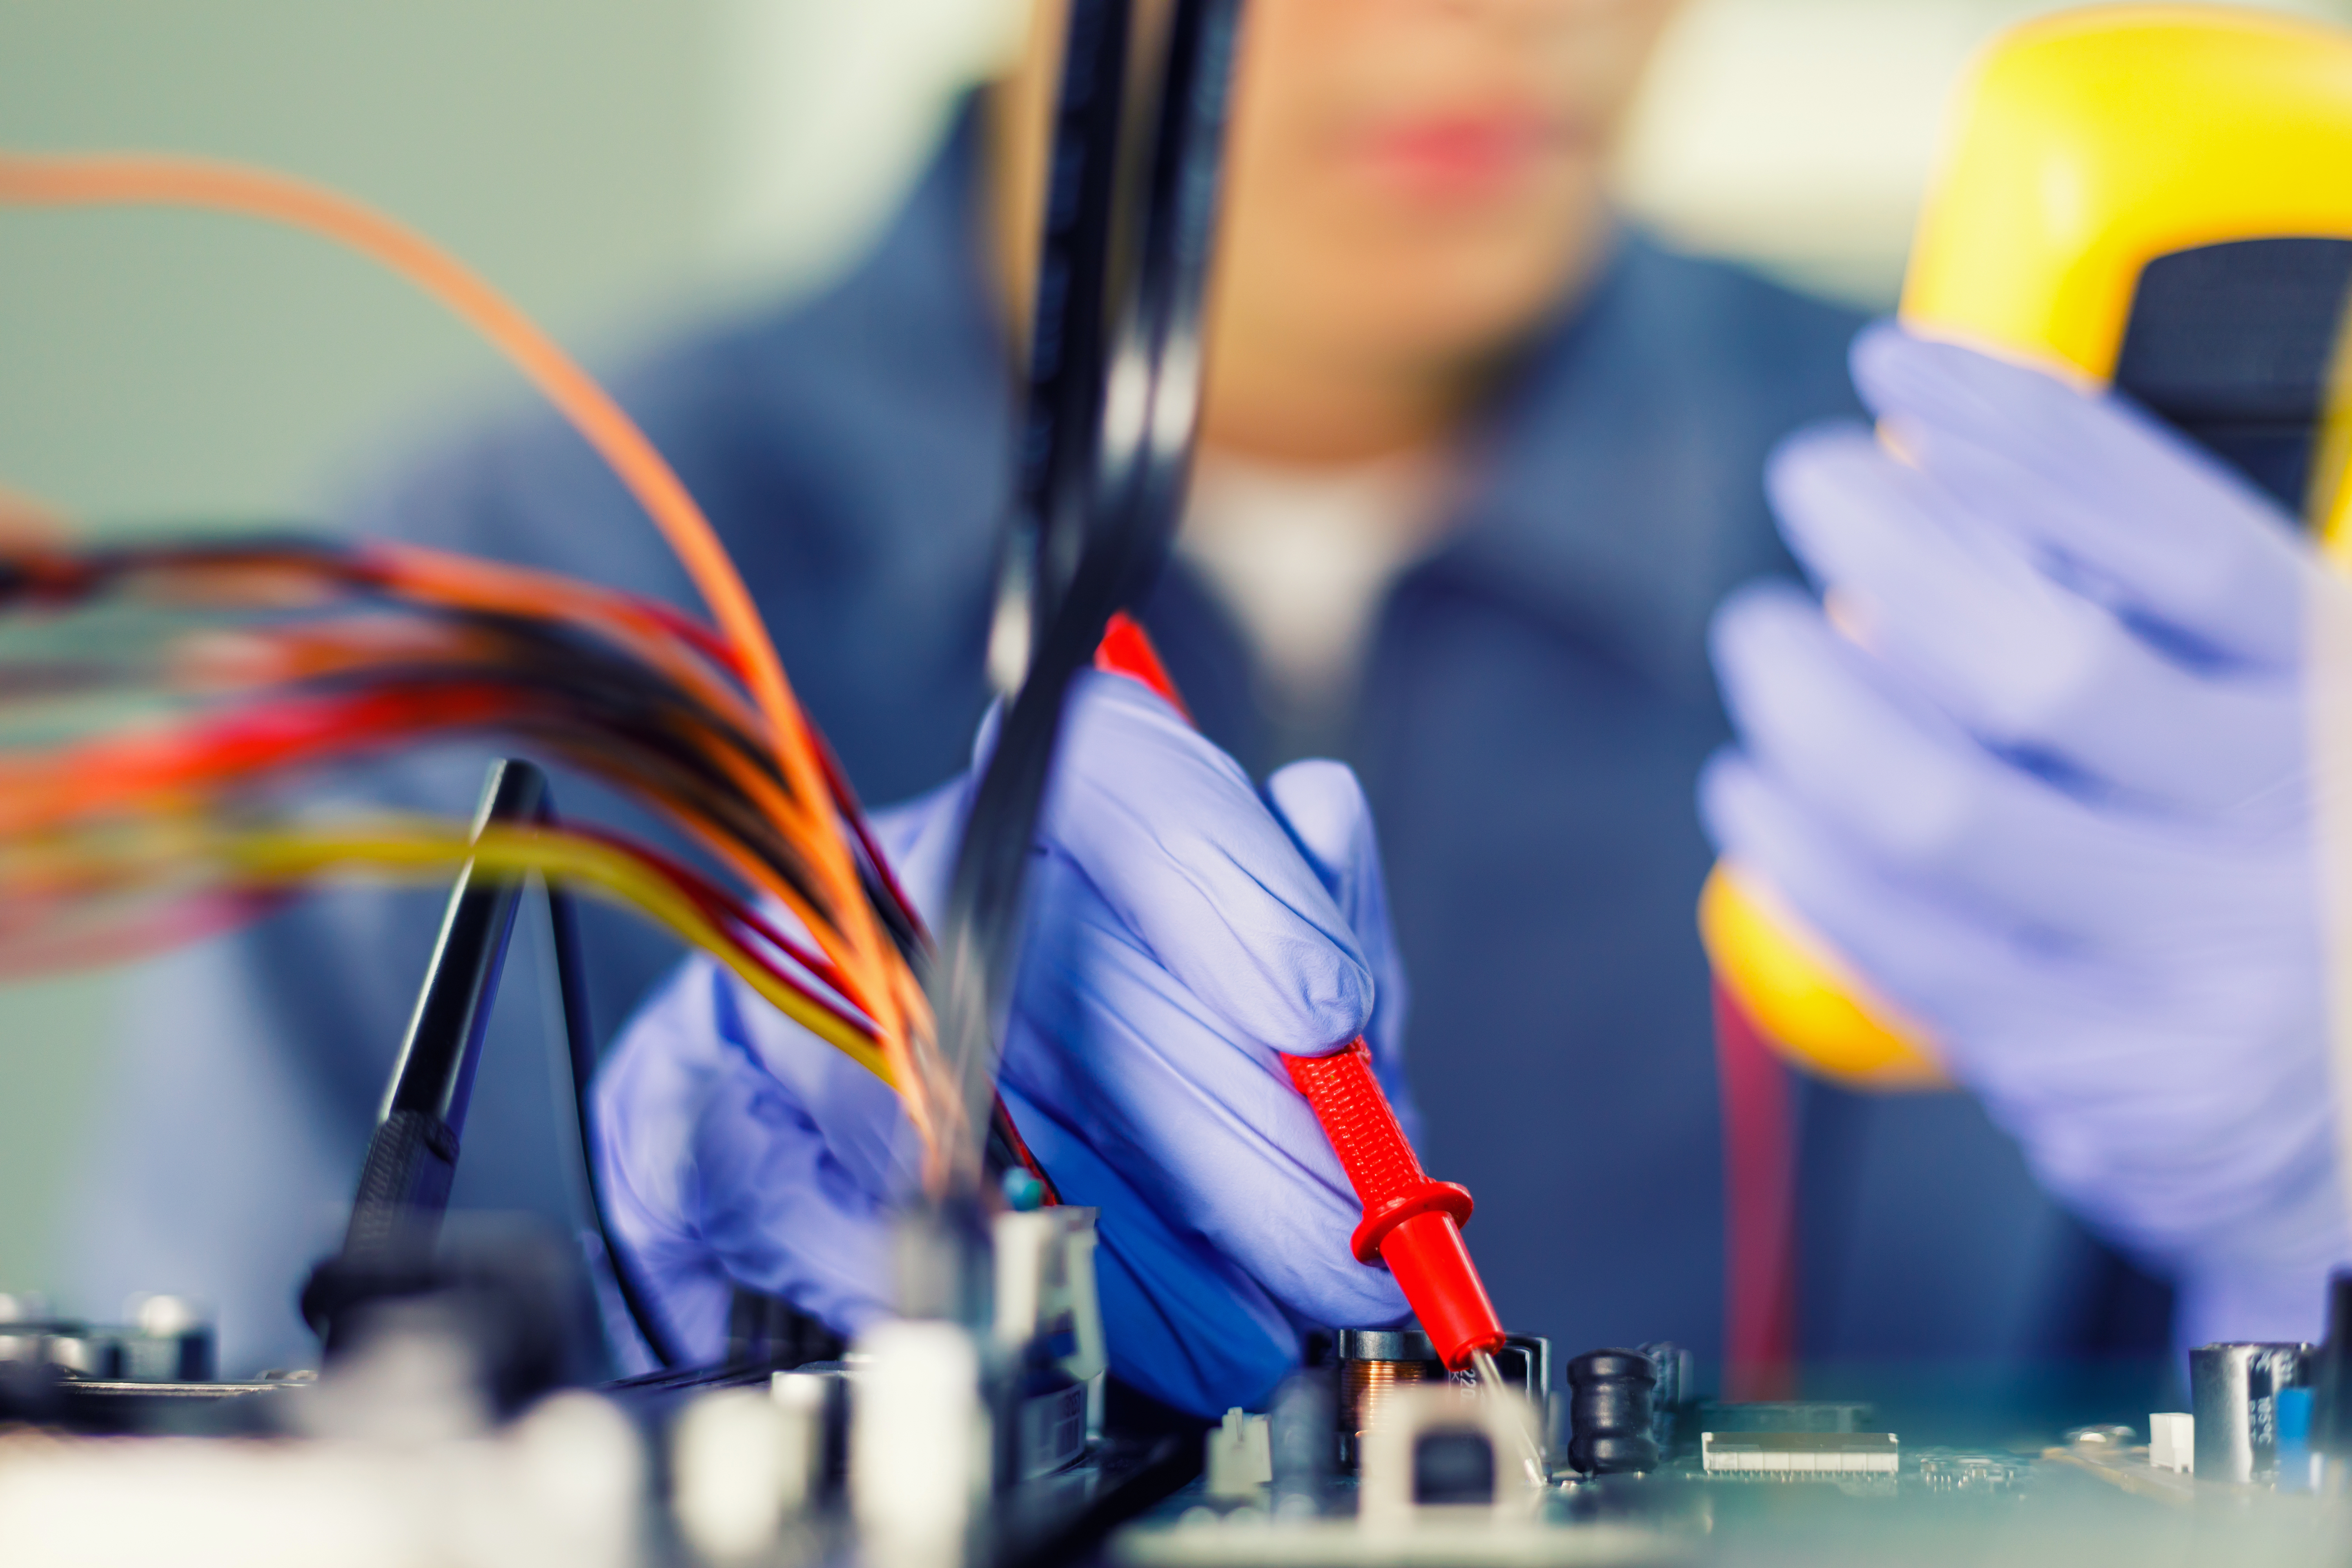 How To Find a Short Circuit with a Multimeter